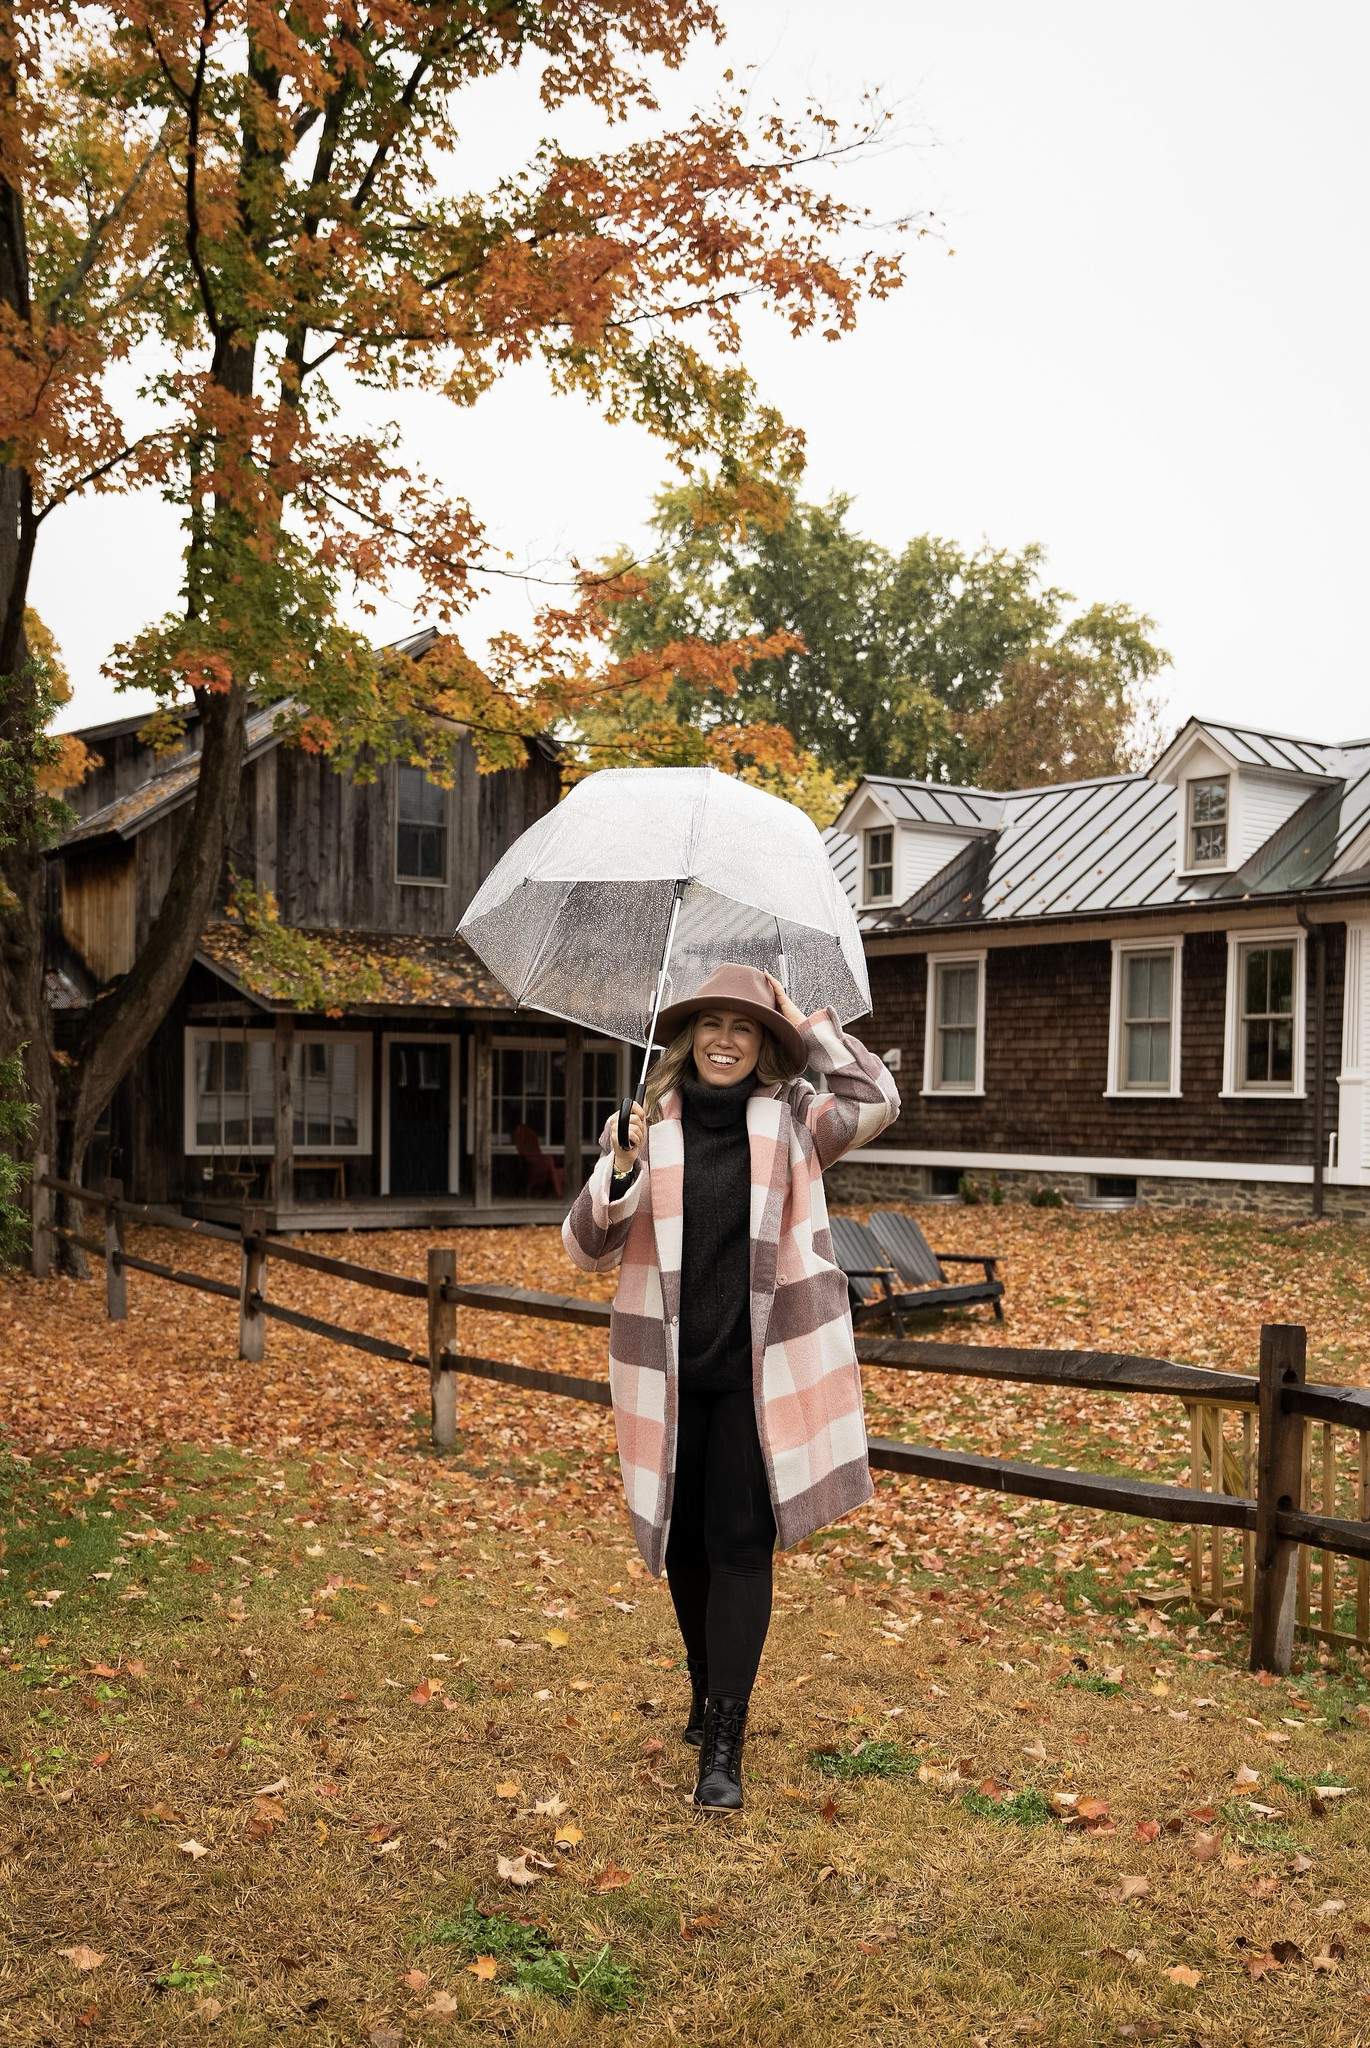 Pink Plaid Winter Coat | Stowe Vermont in the Rain | What to Wear in Vermont in the Fall | Vermont Packing List for Fall | What to Wear in Vermont in October | What to Wear on a Fall Vacation | Fall Outfits